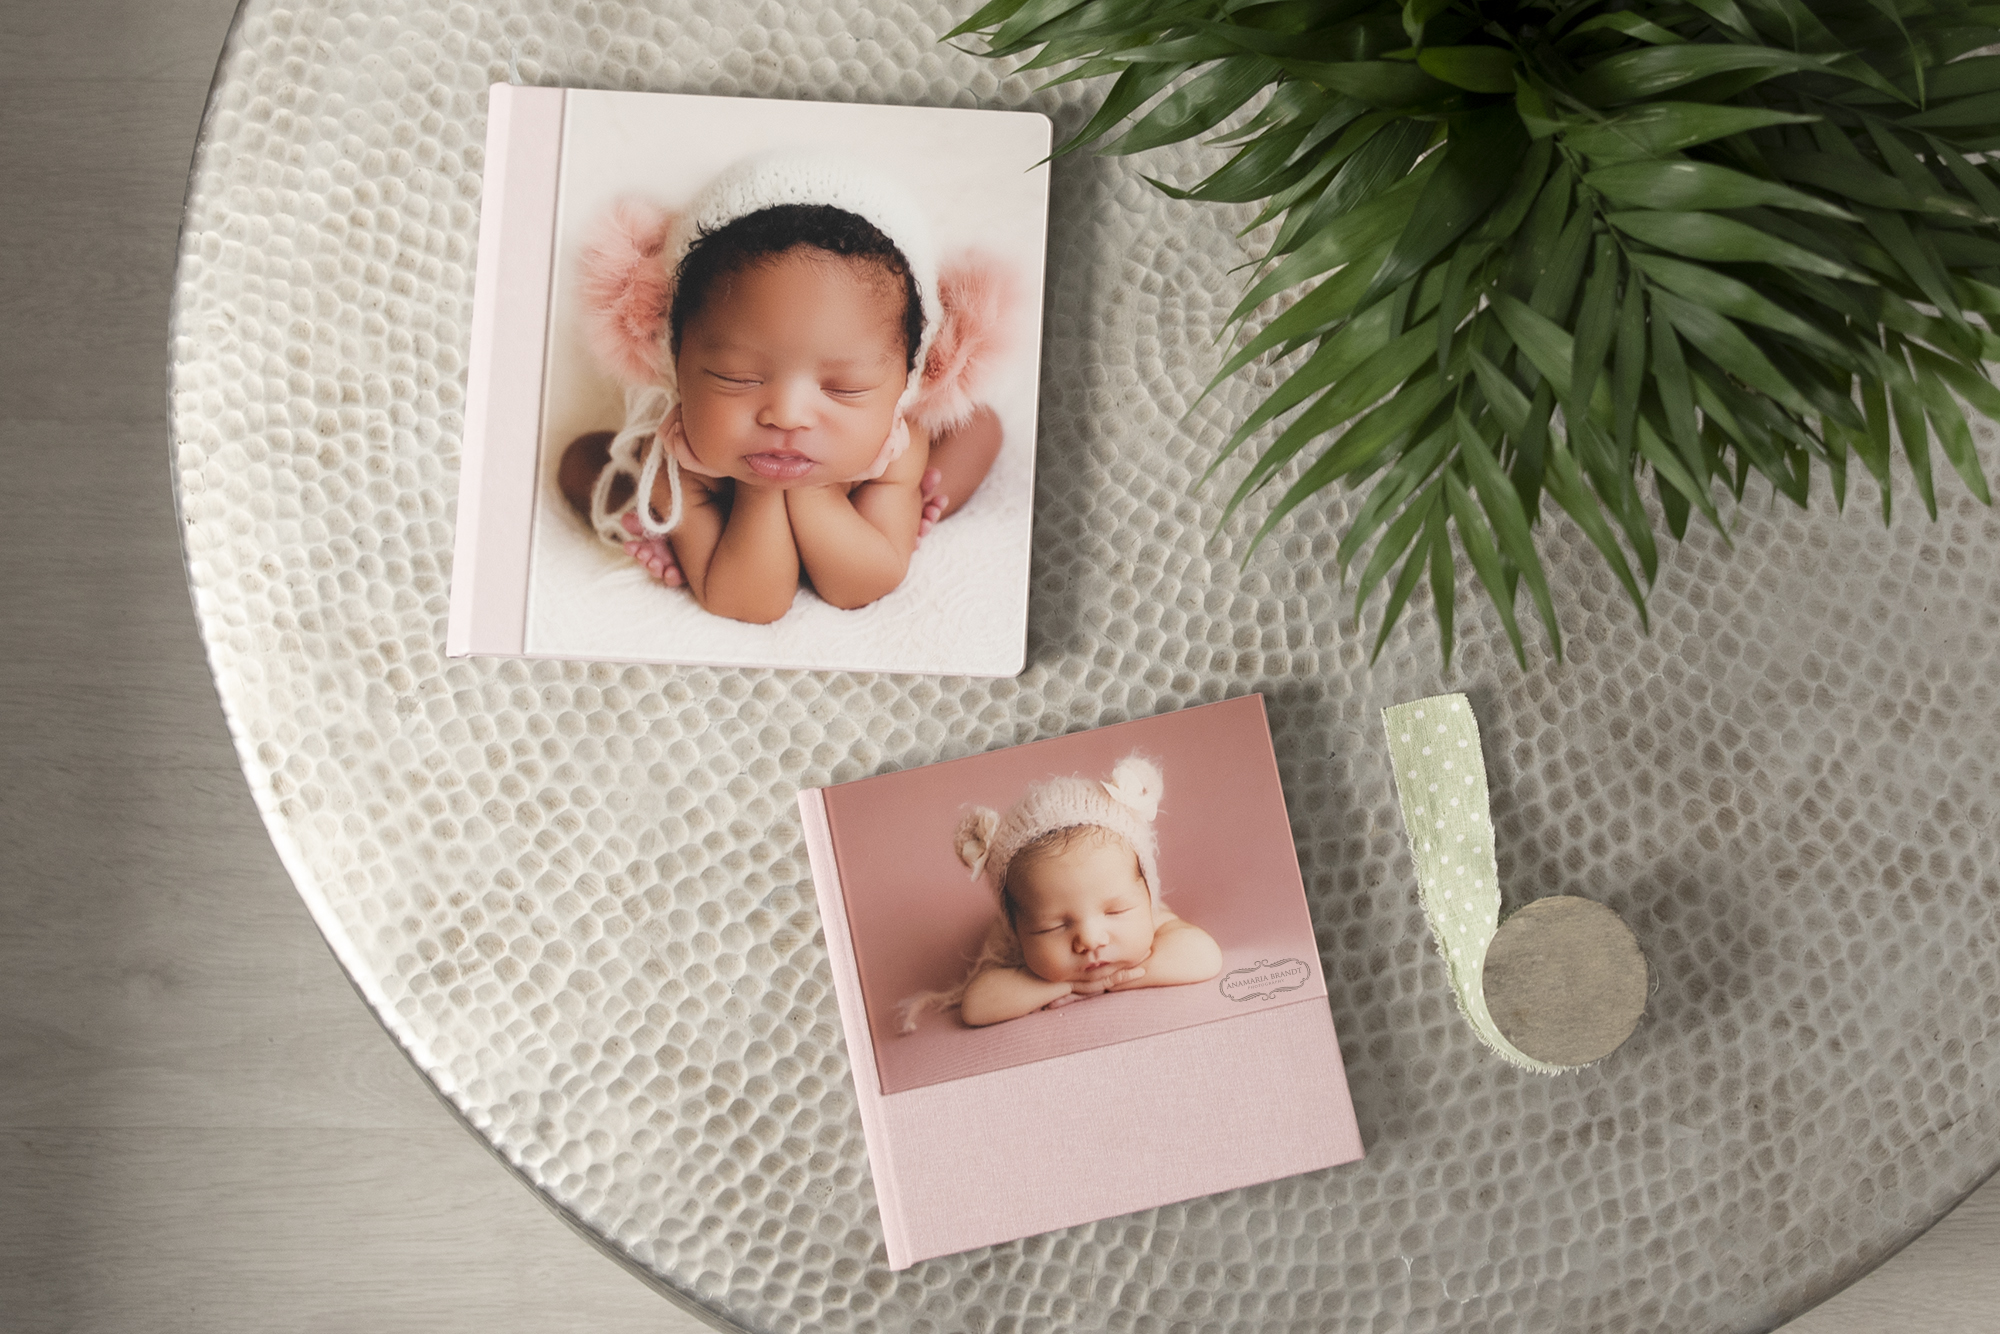 Professional Acrylic Albums for Newborn Photography